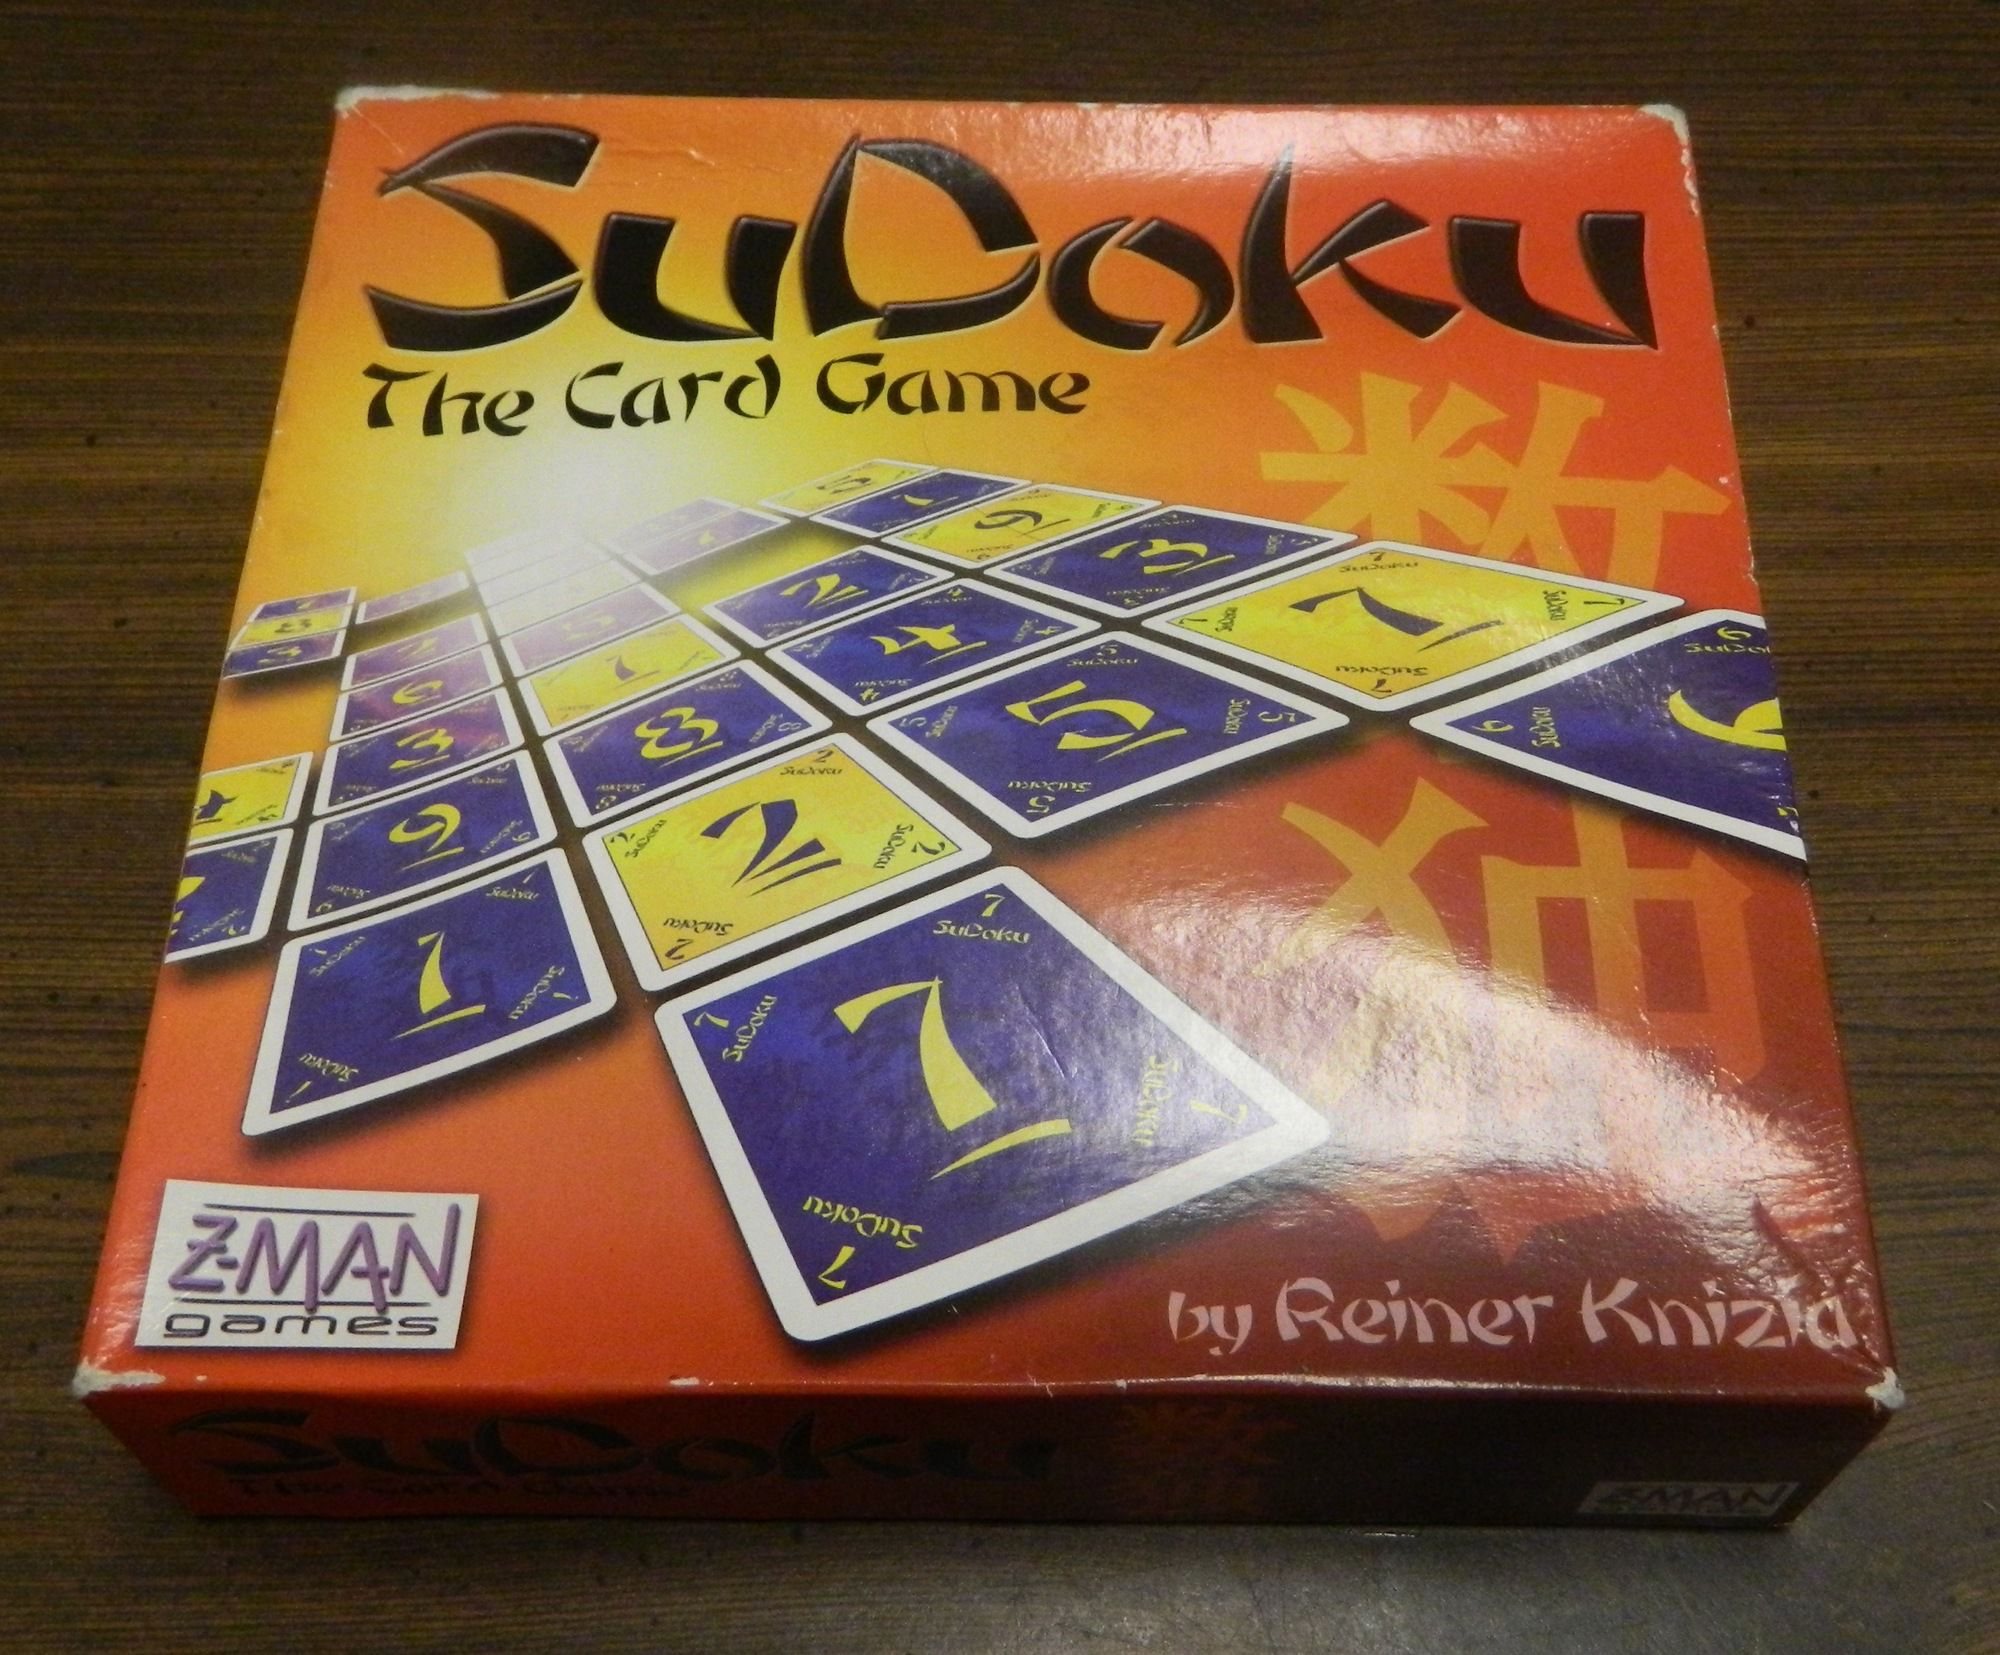 Box for Sudoku Card Game